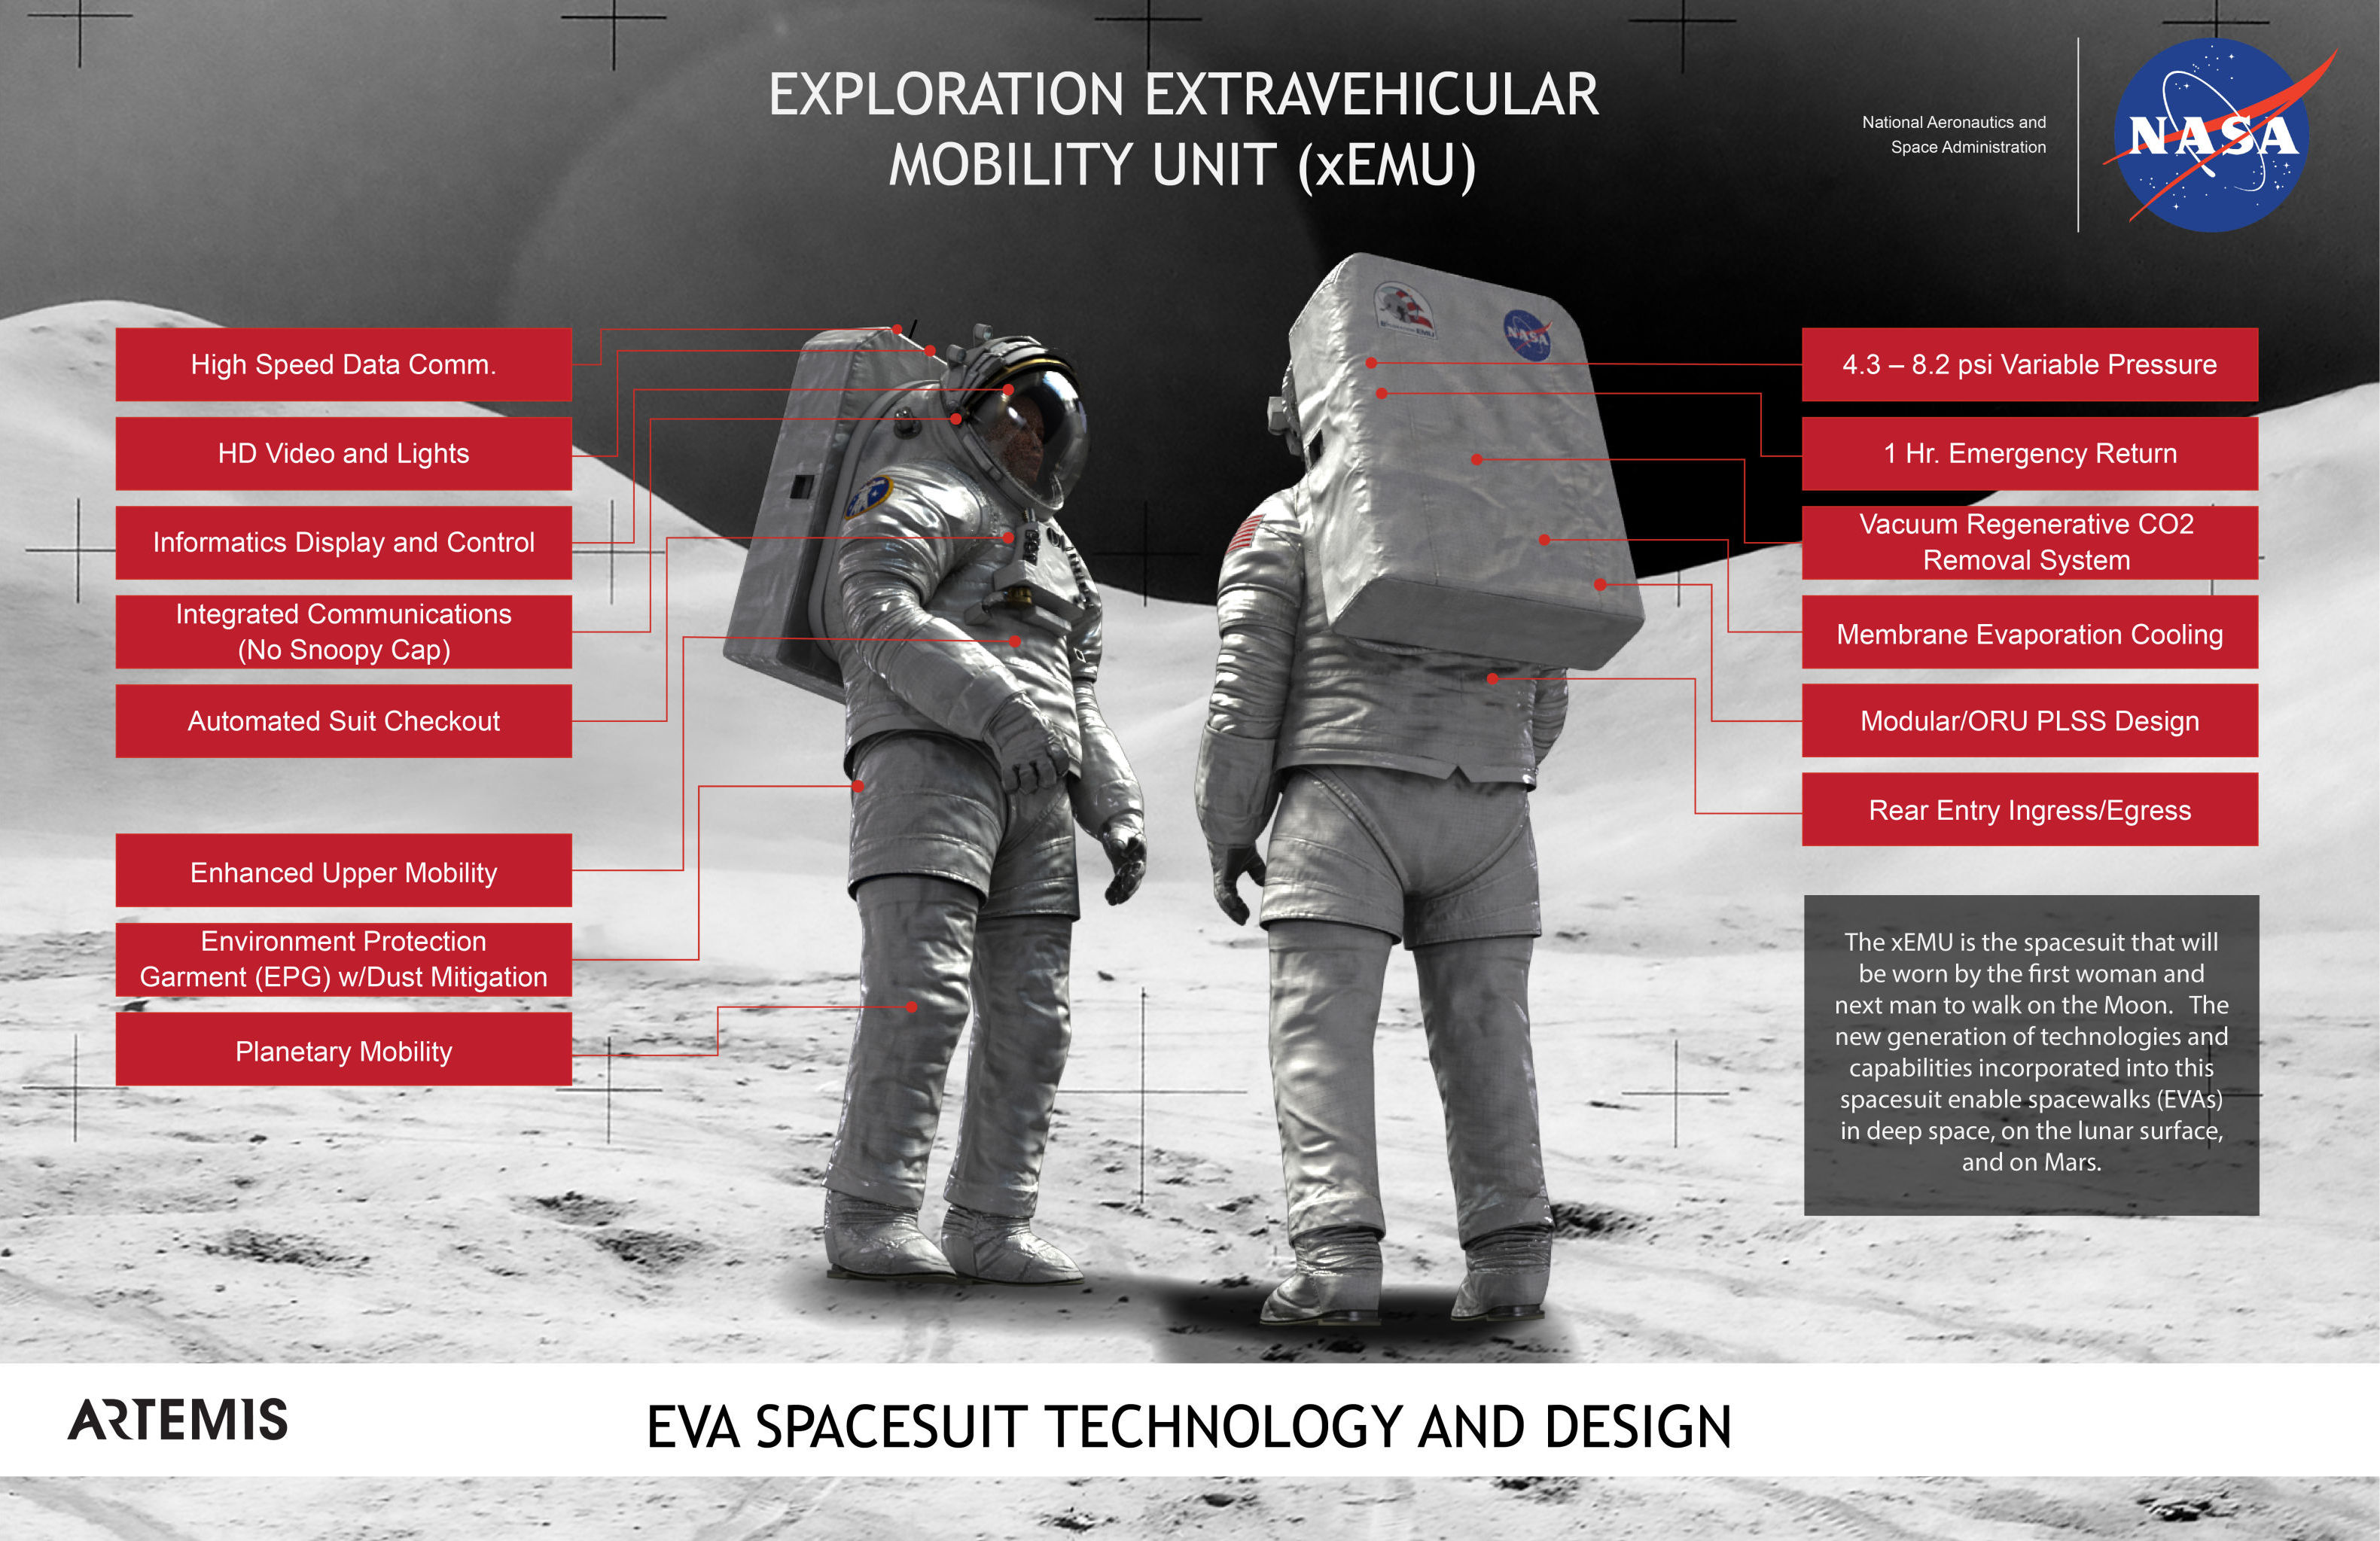 NASA Infographic on the features of its new Exploration Extravehicular Mobility Unit (xEMU).